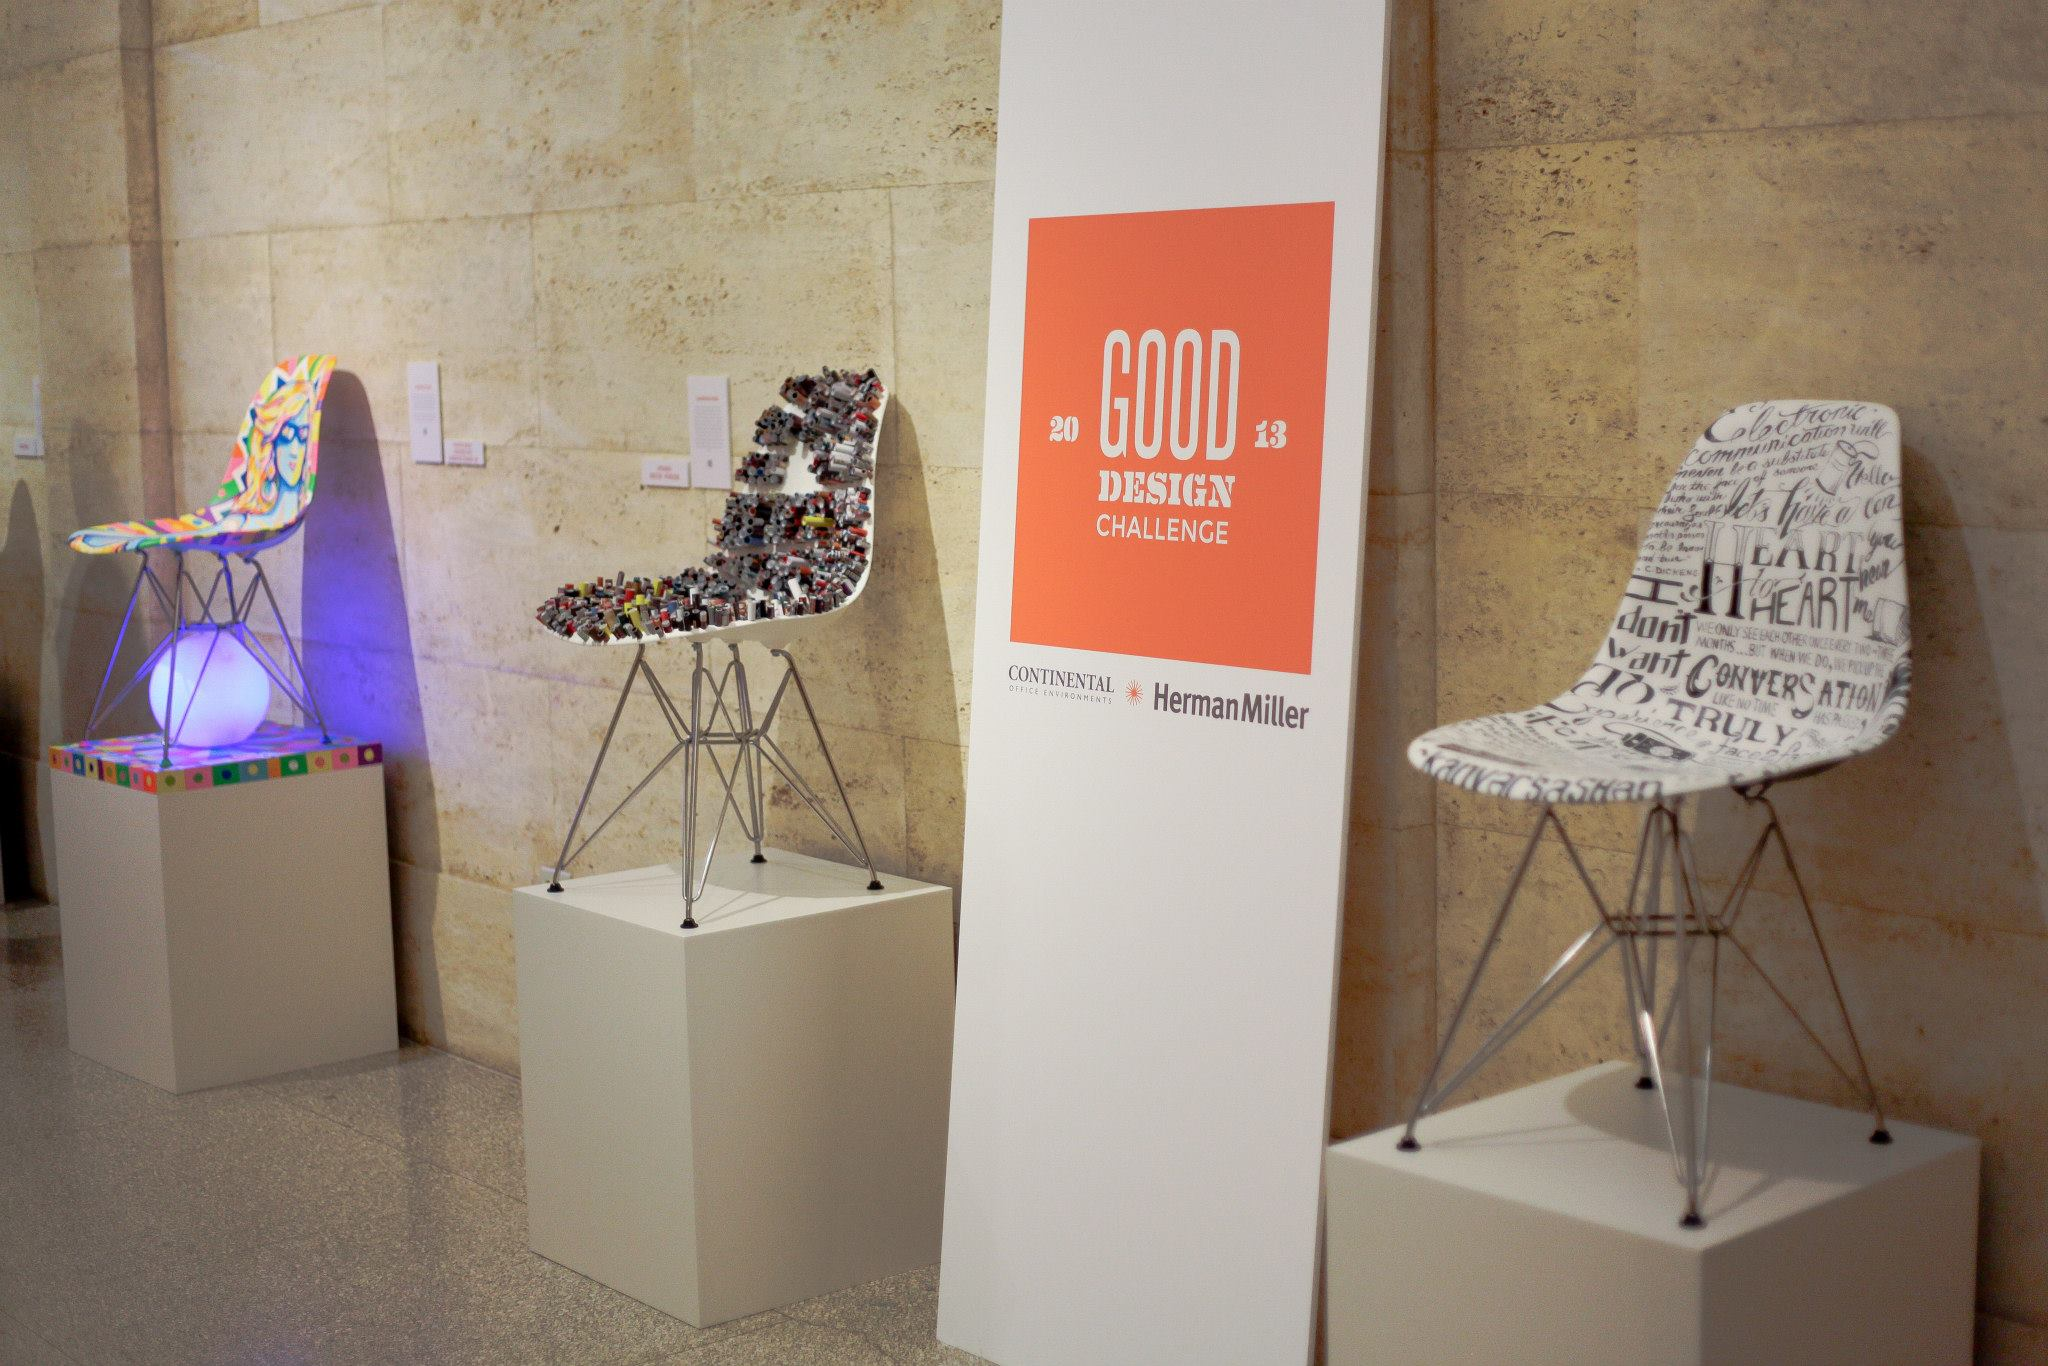 The Good Design Challenge 2013